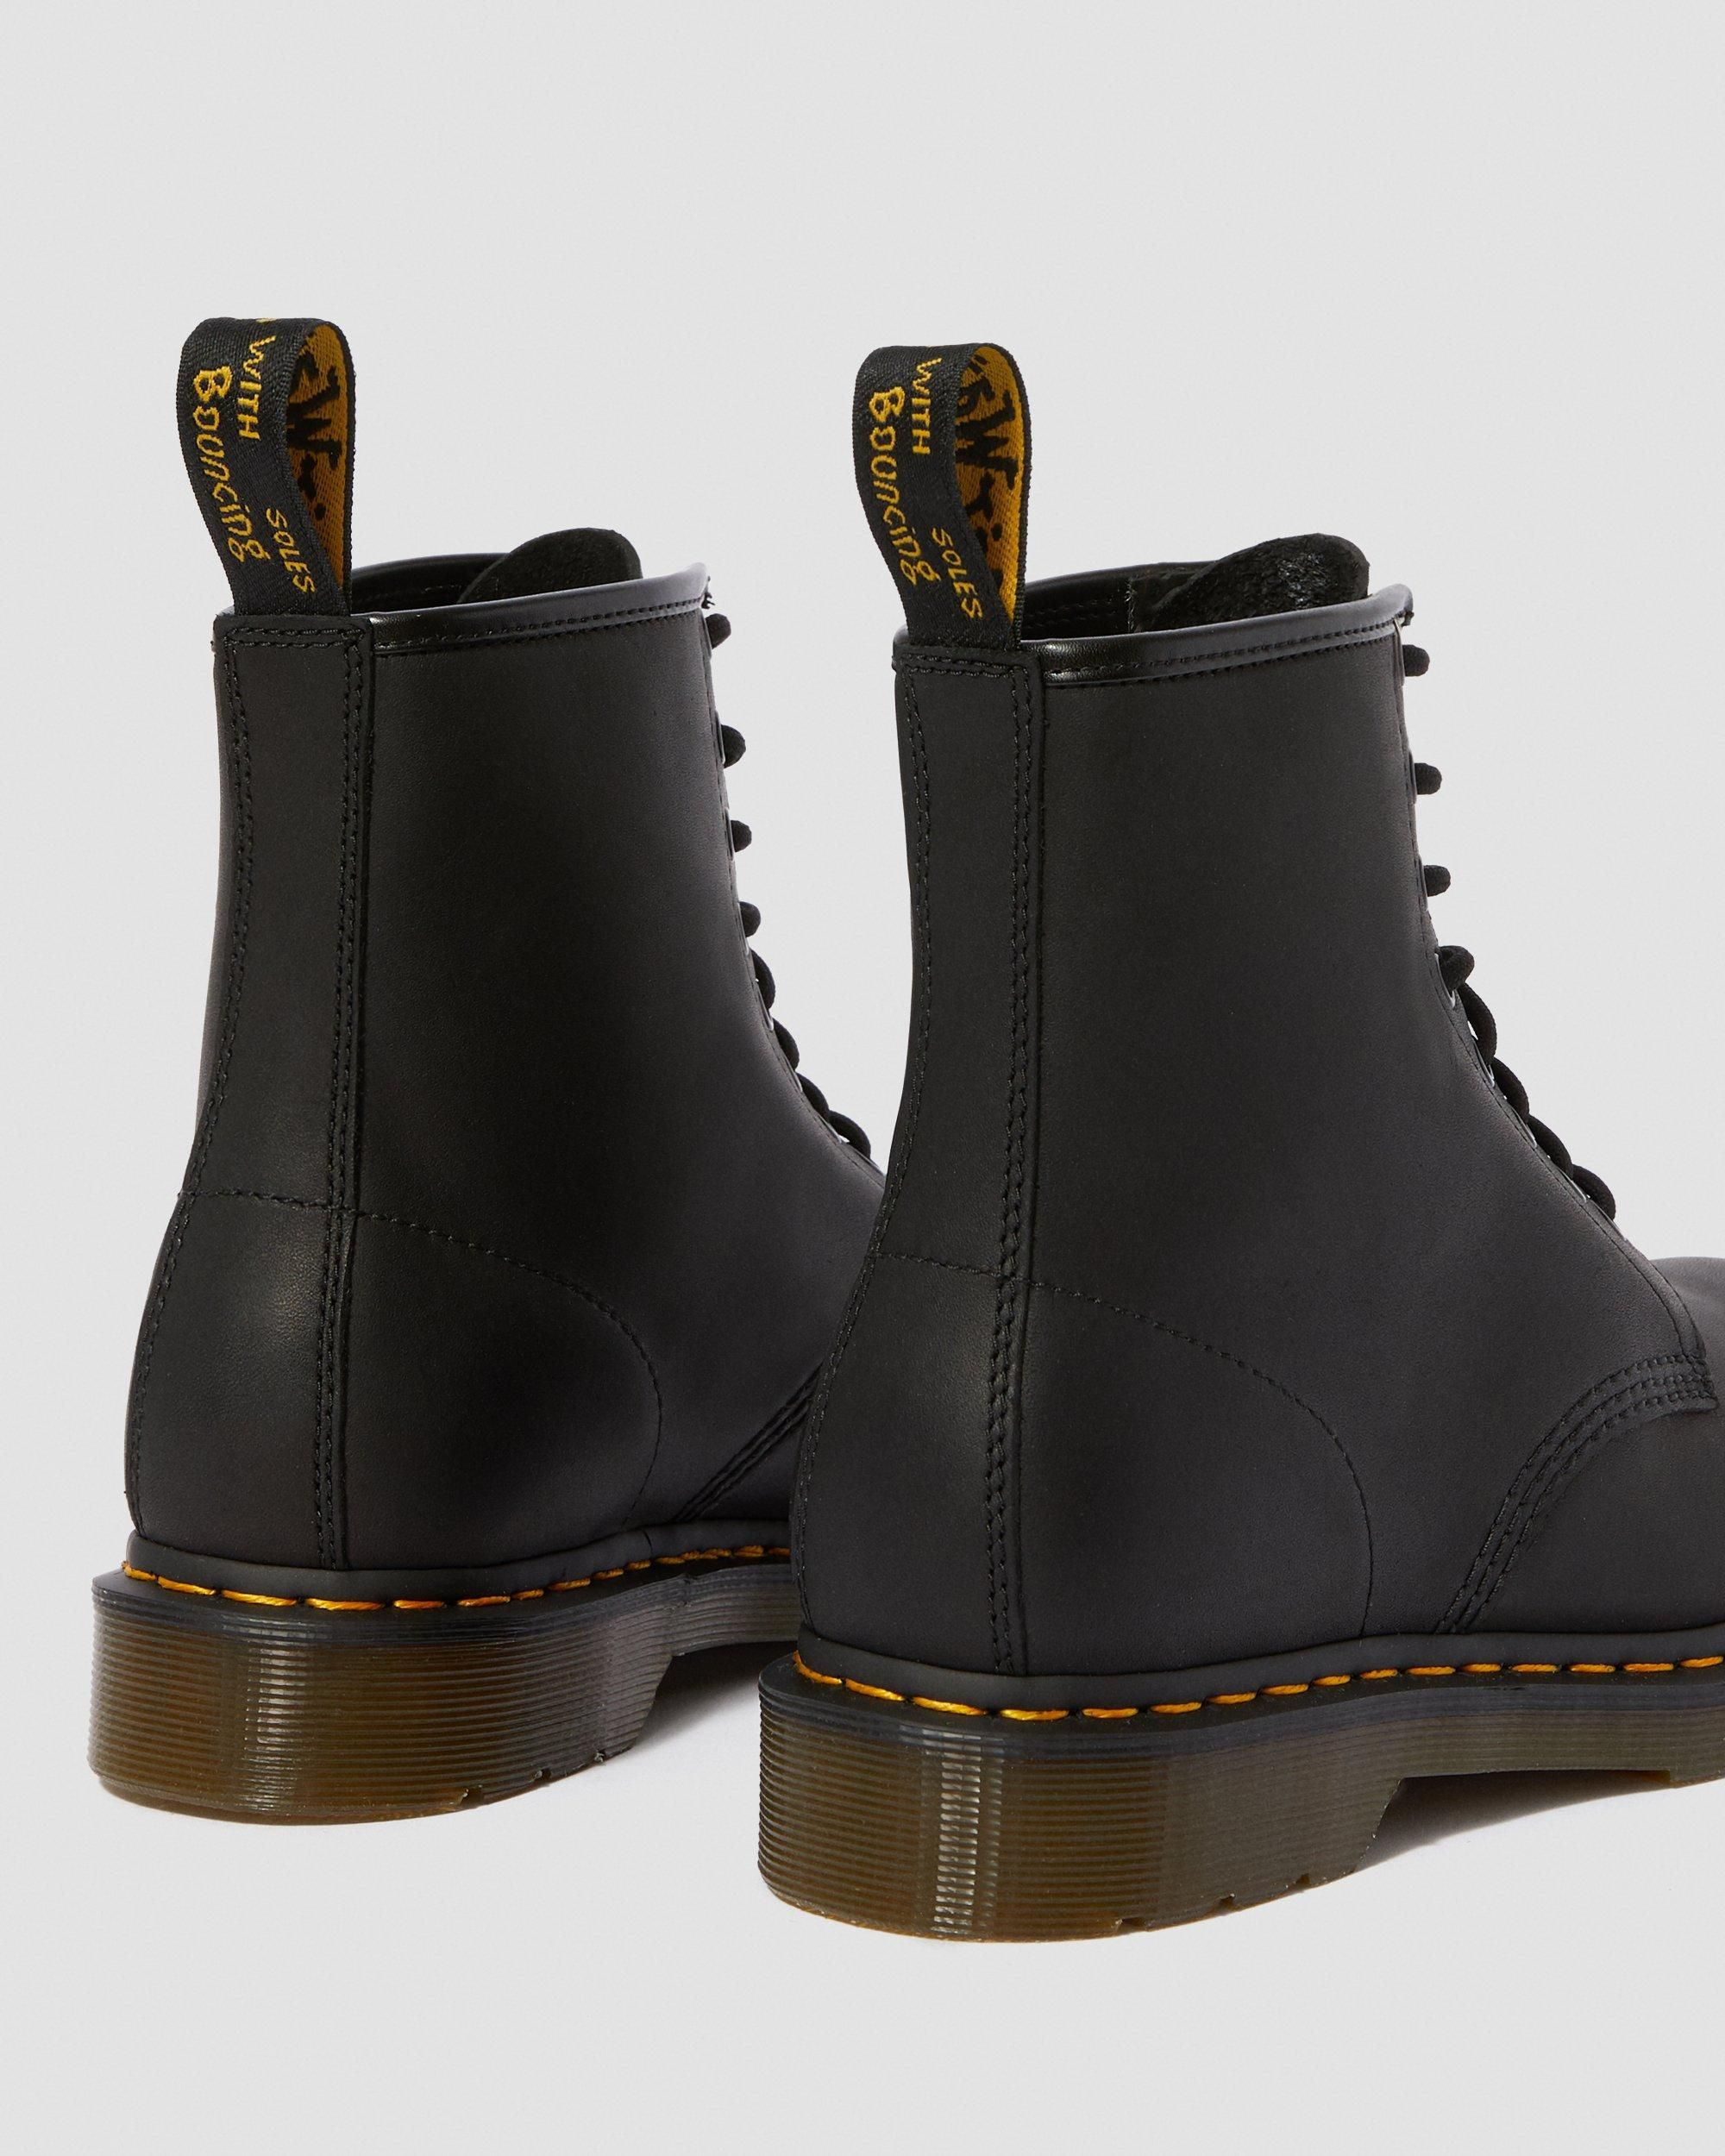 DR MARTENS 1460 GREASY LEATHER LACE UP